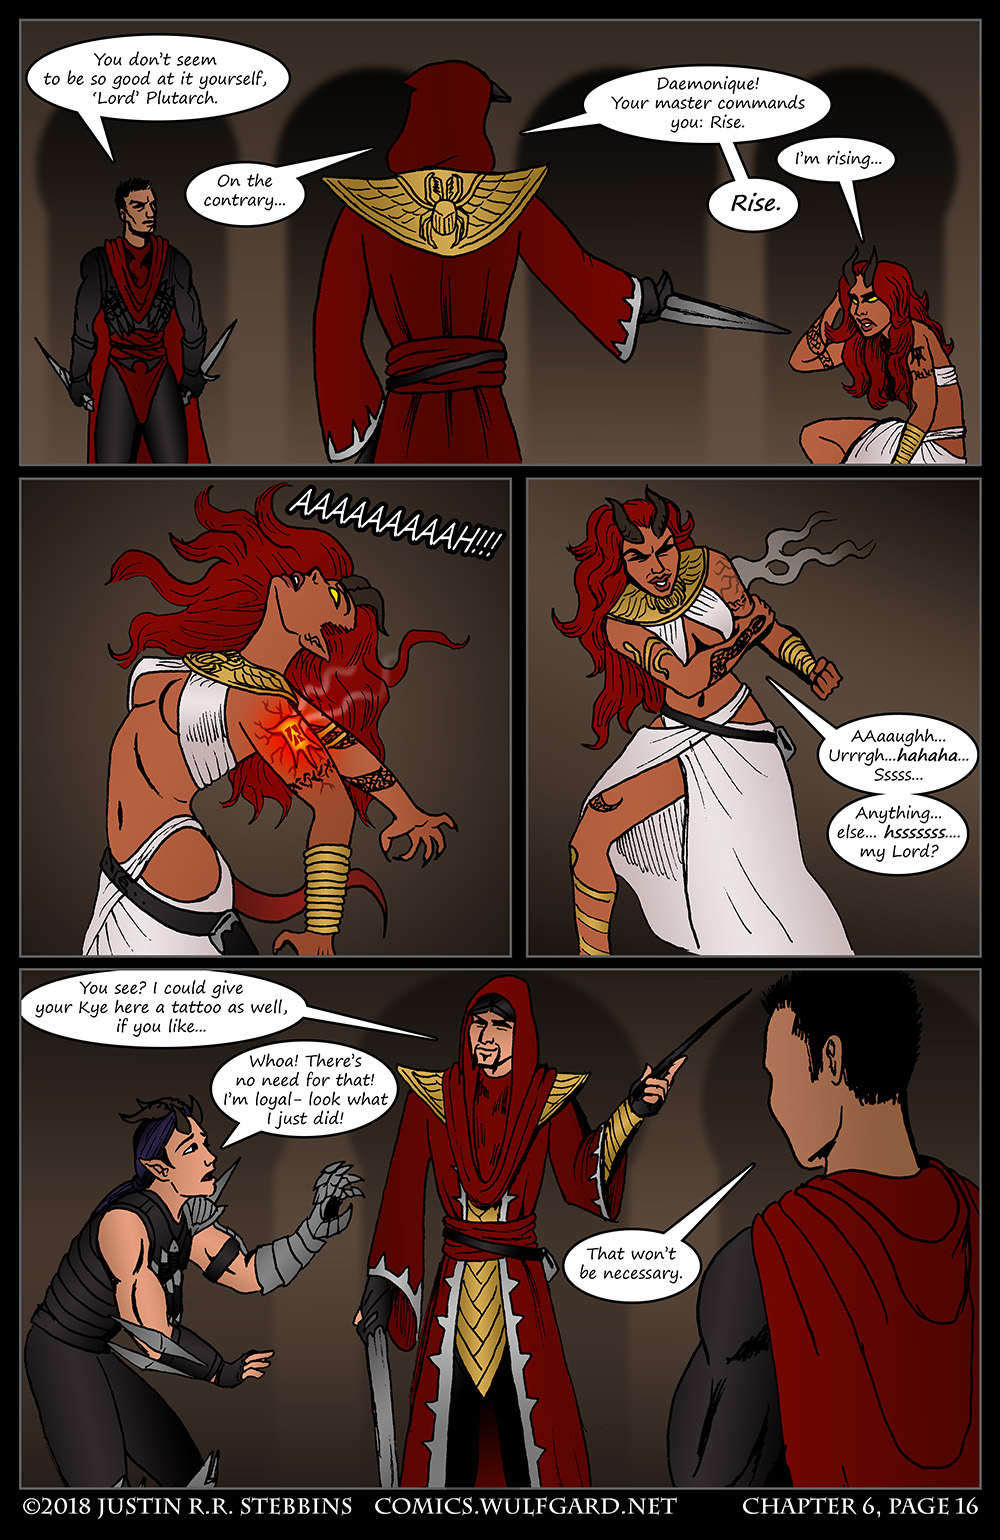 chapter06_page16.jpg